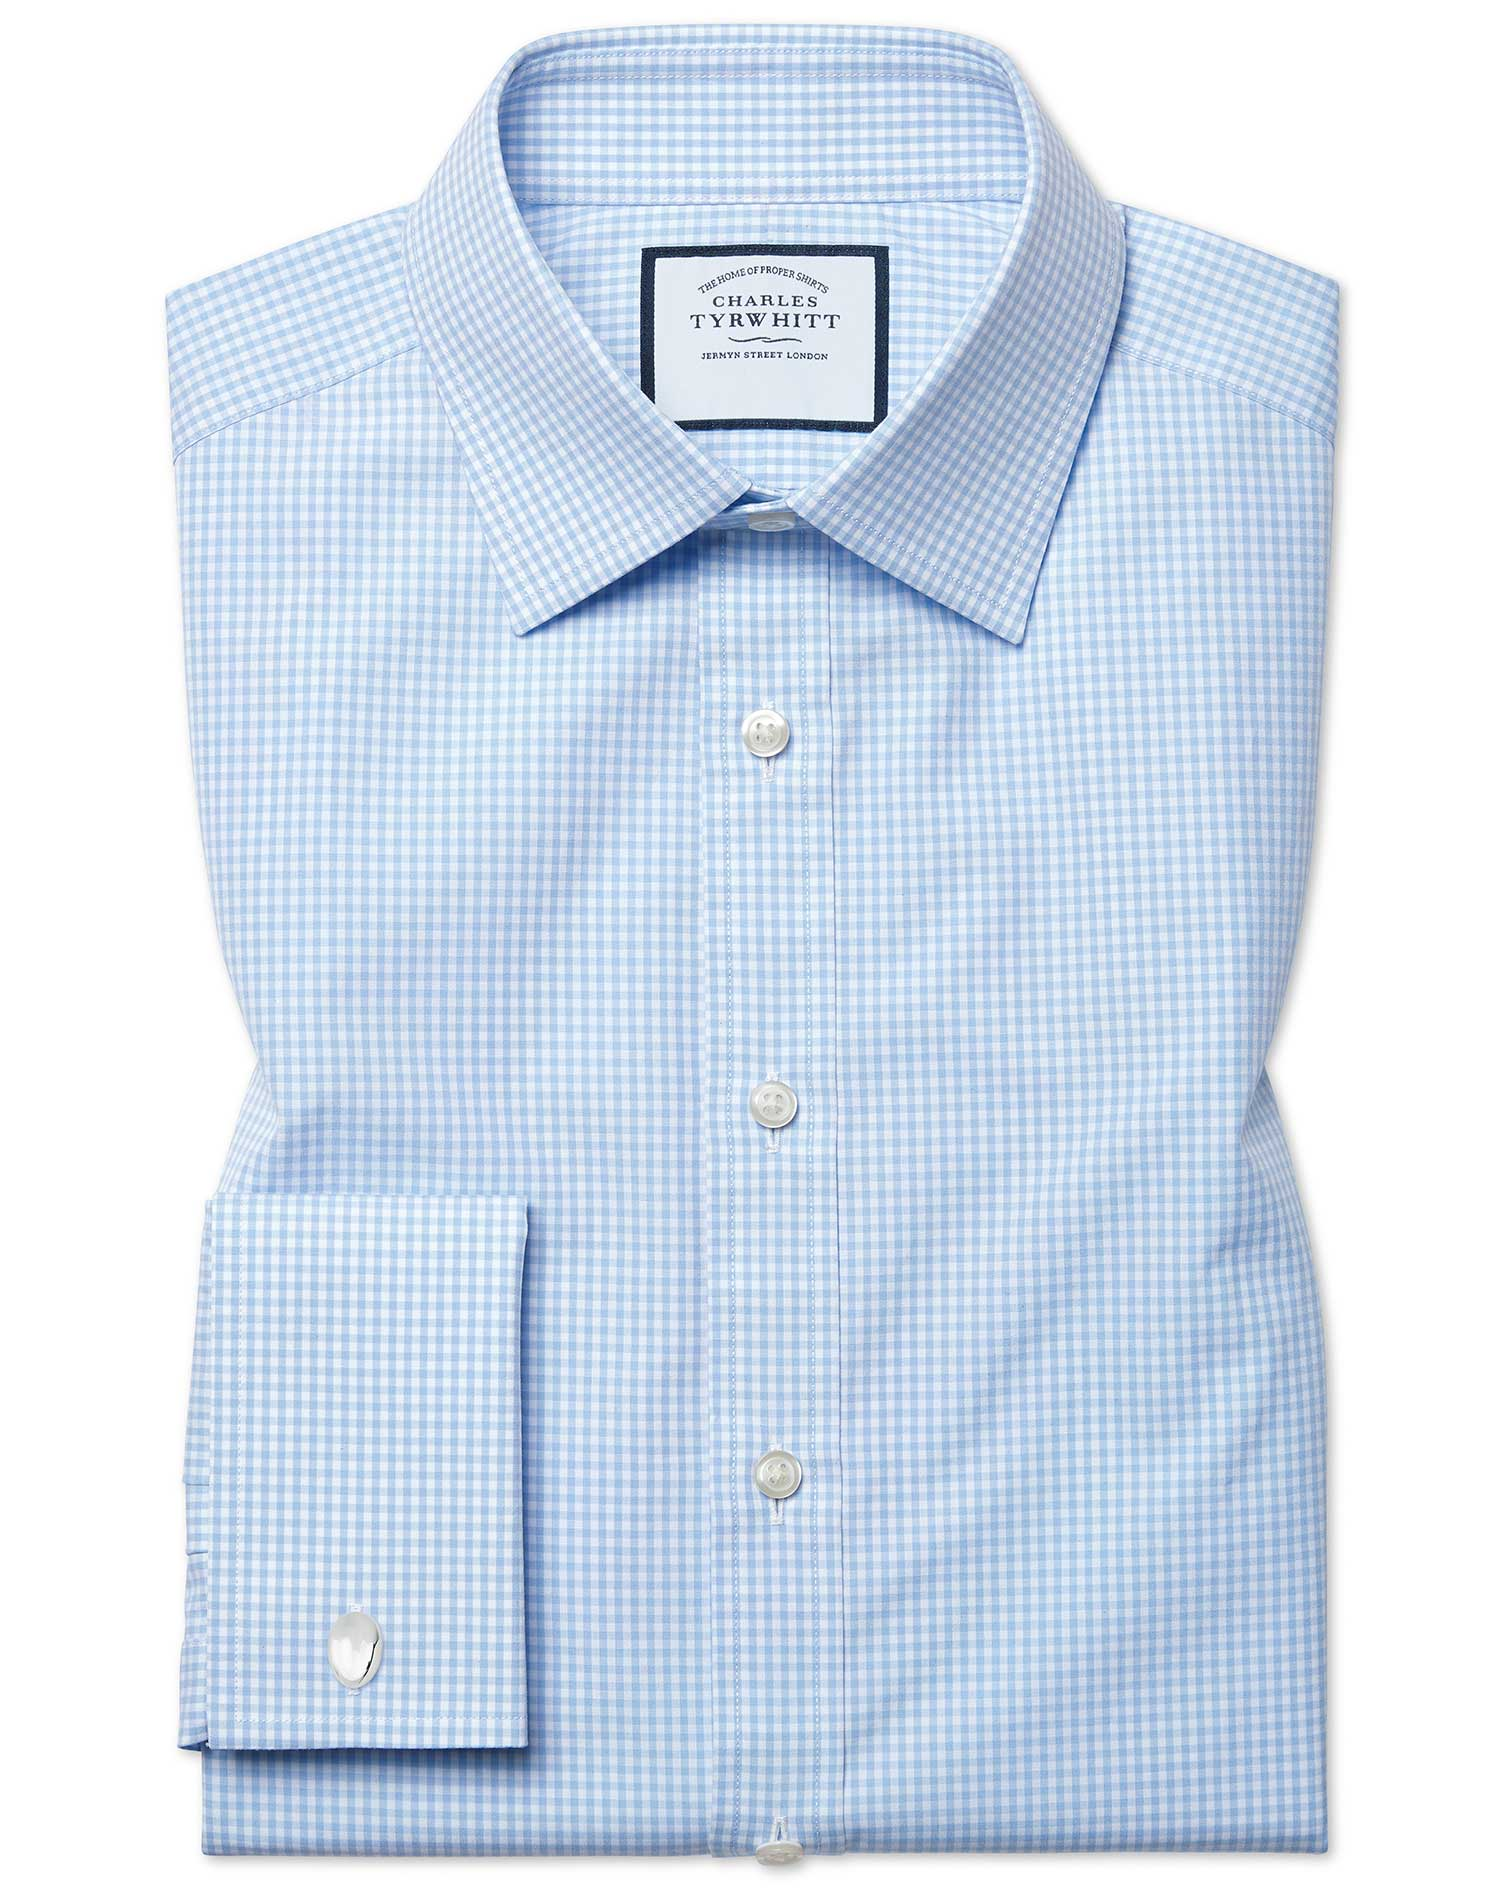 Extra Slim Fit Small Gingham Sky Blue Cotton Formal Shirt Double Cuff Size 17/37 by Charles Tyrwhitt